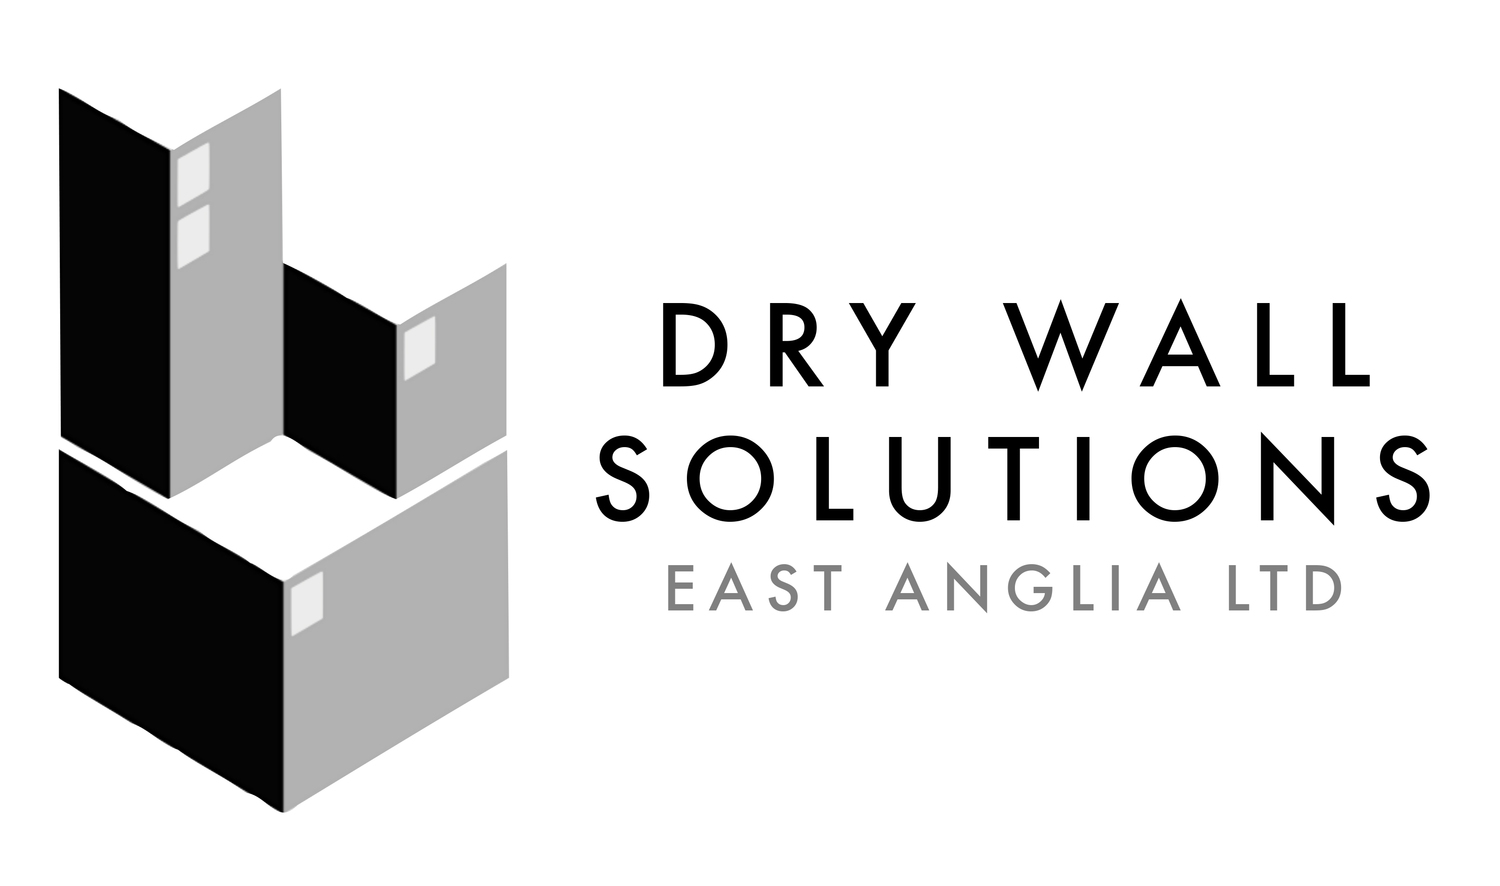 Dry Wall Solutions